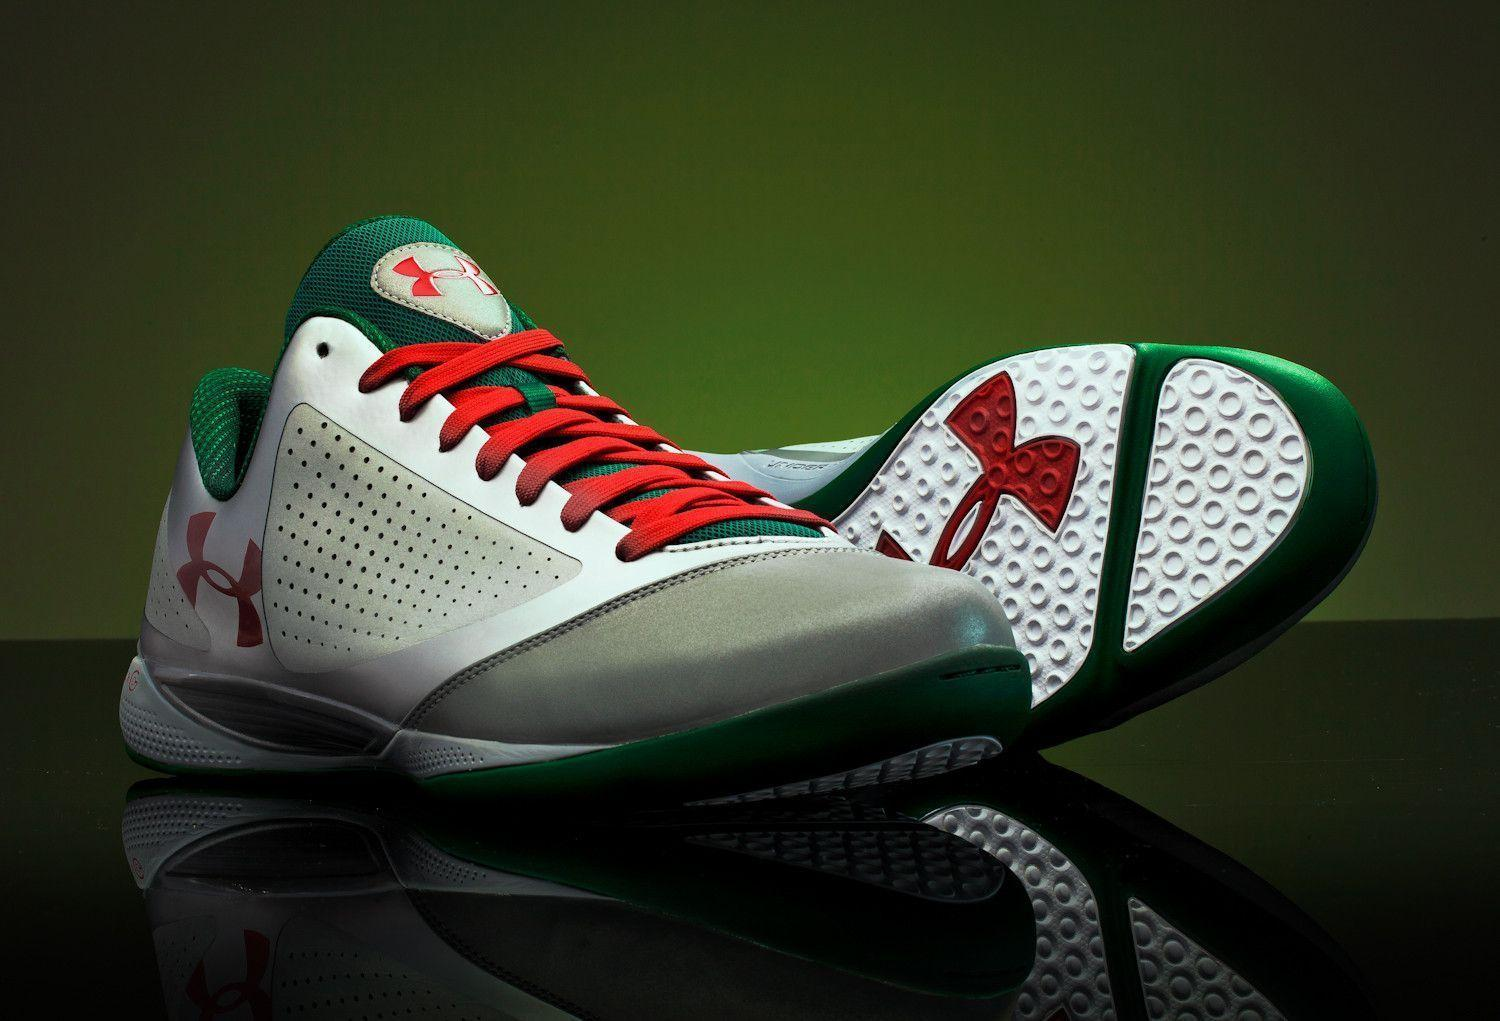 under armour basketball wallpaper - photo #2